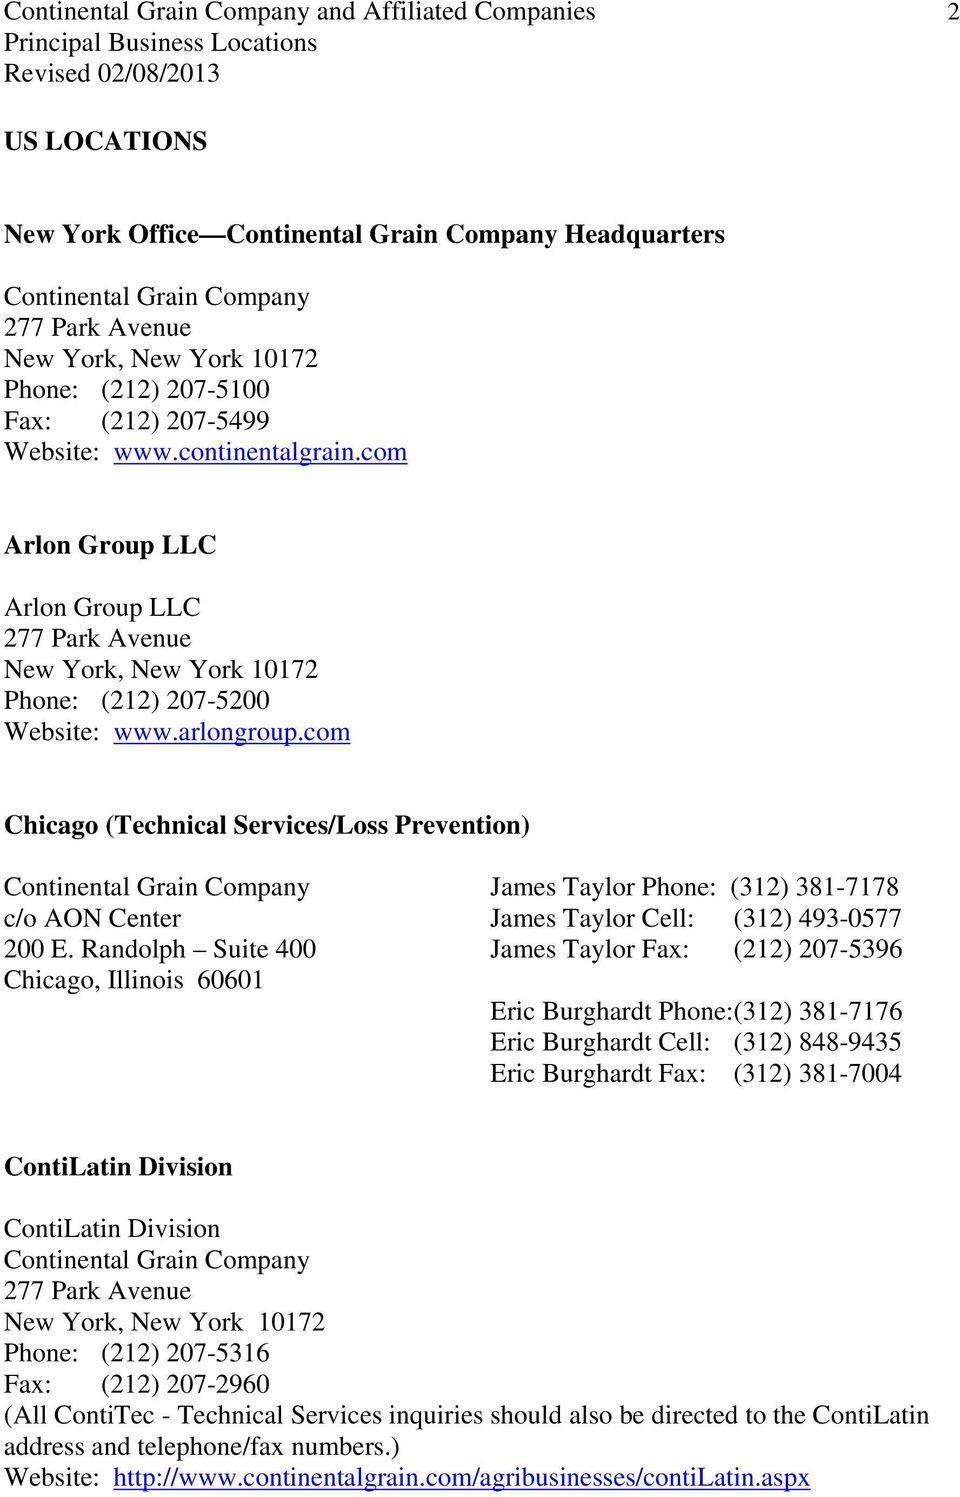 com Chicago (Technical Services/Loss Prevention) Continental Grain Company James Taylor Phone: (312) 381-7178 c/o AON Center James Taylor Cell: (312) 493-0577 200 E.